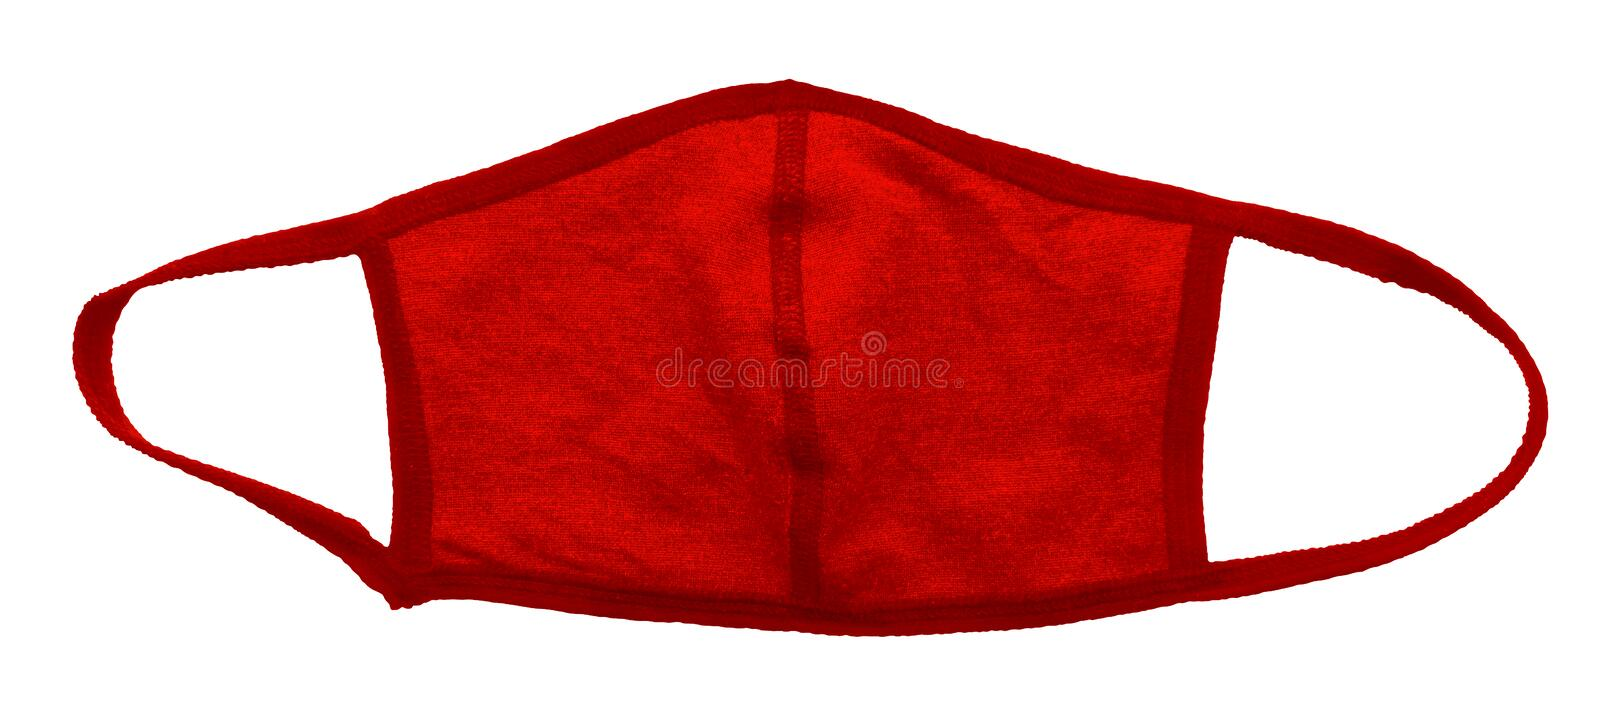 Protective mask - red stock photo